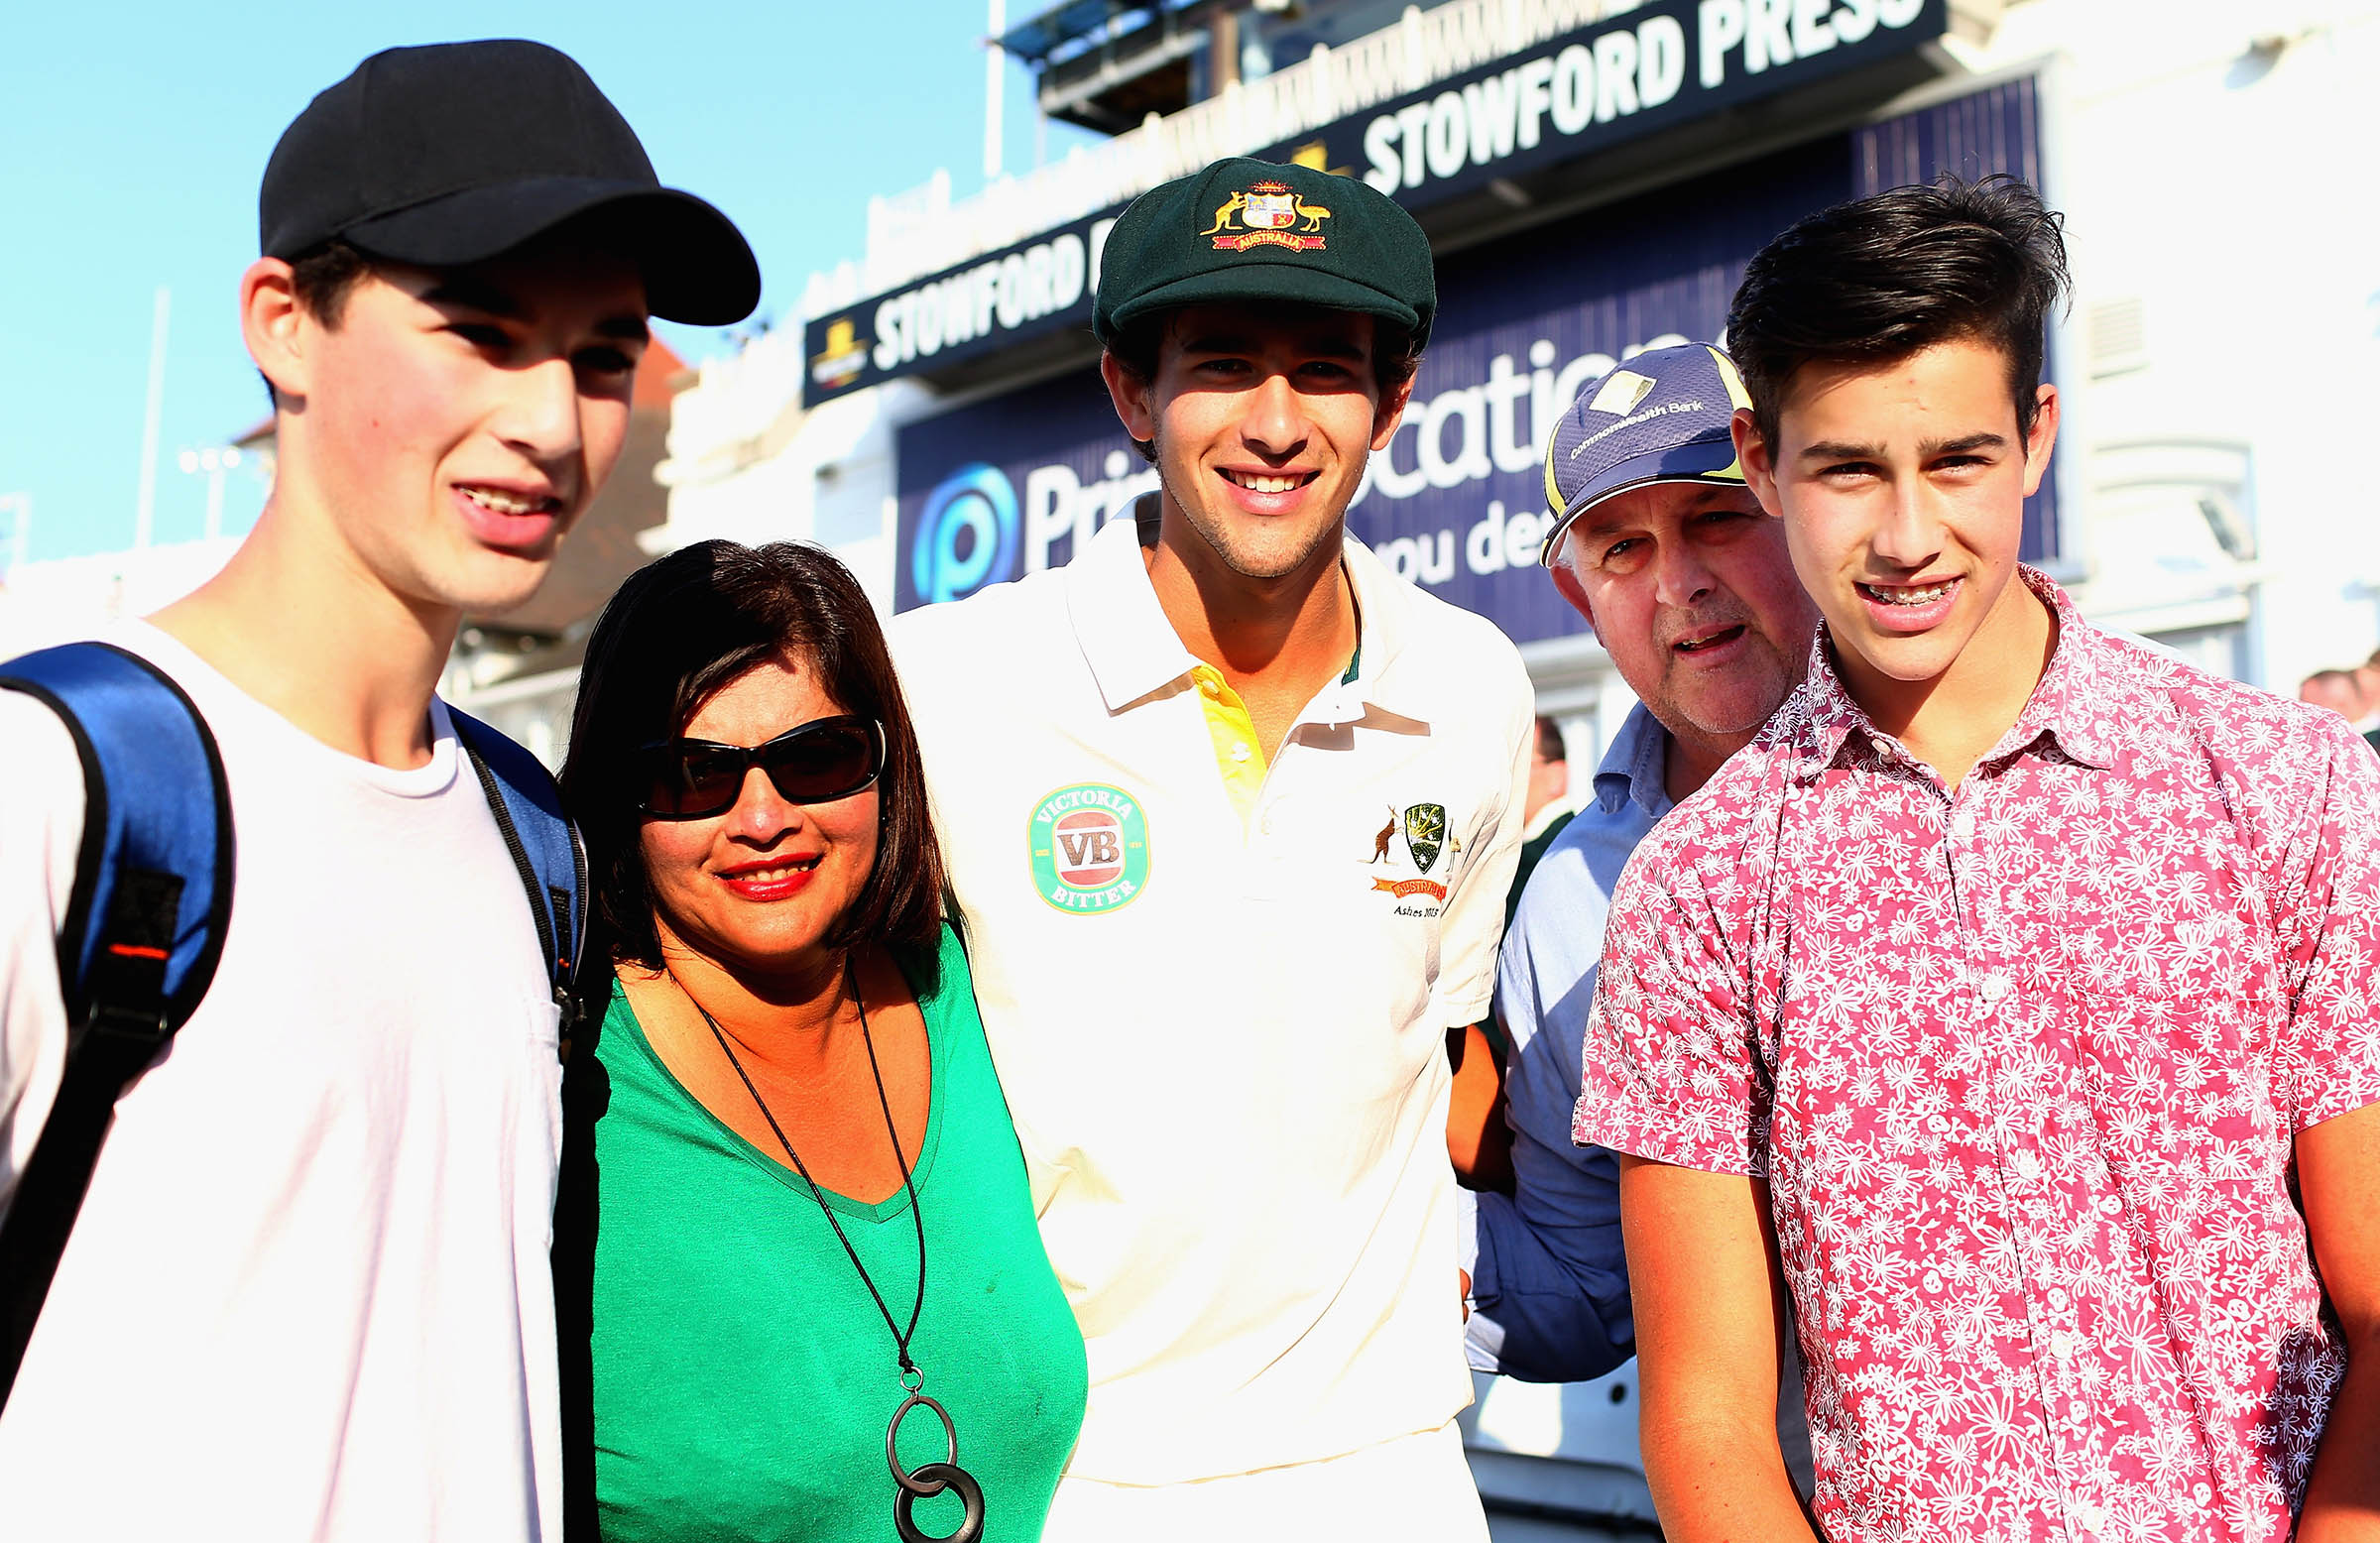 Wes, right, stands out in paisley during Ash's famous 2013 Test debut // Getty